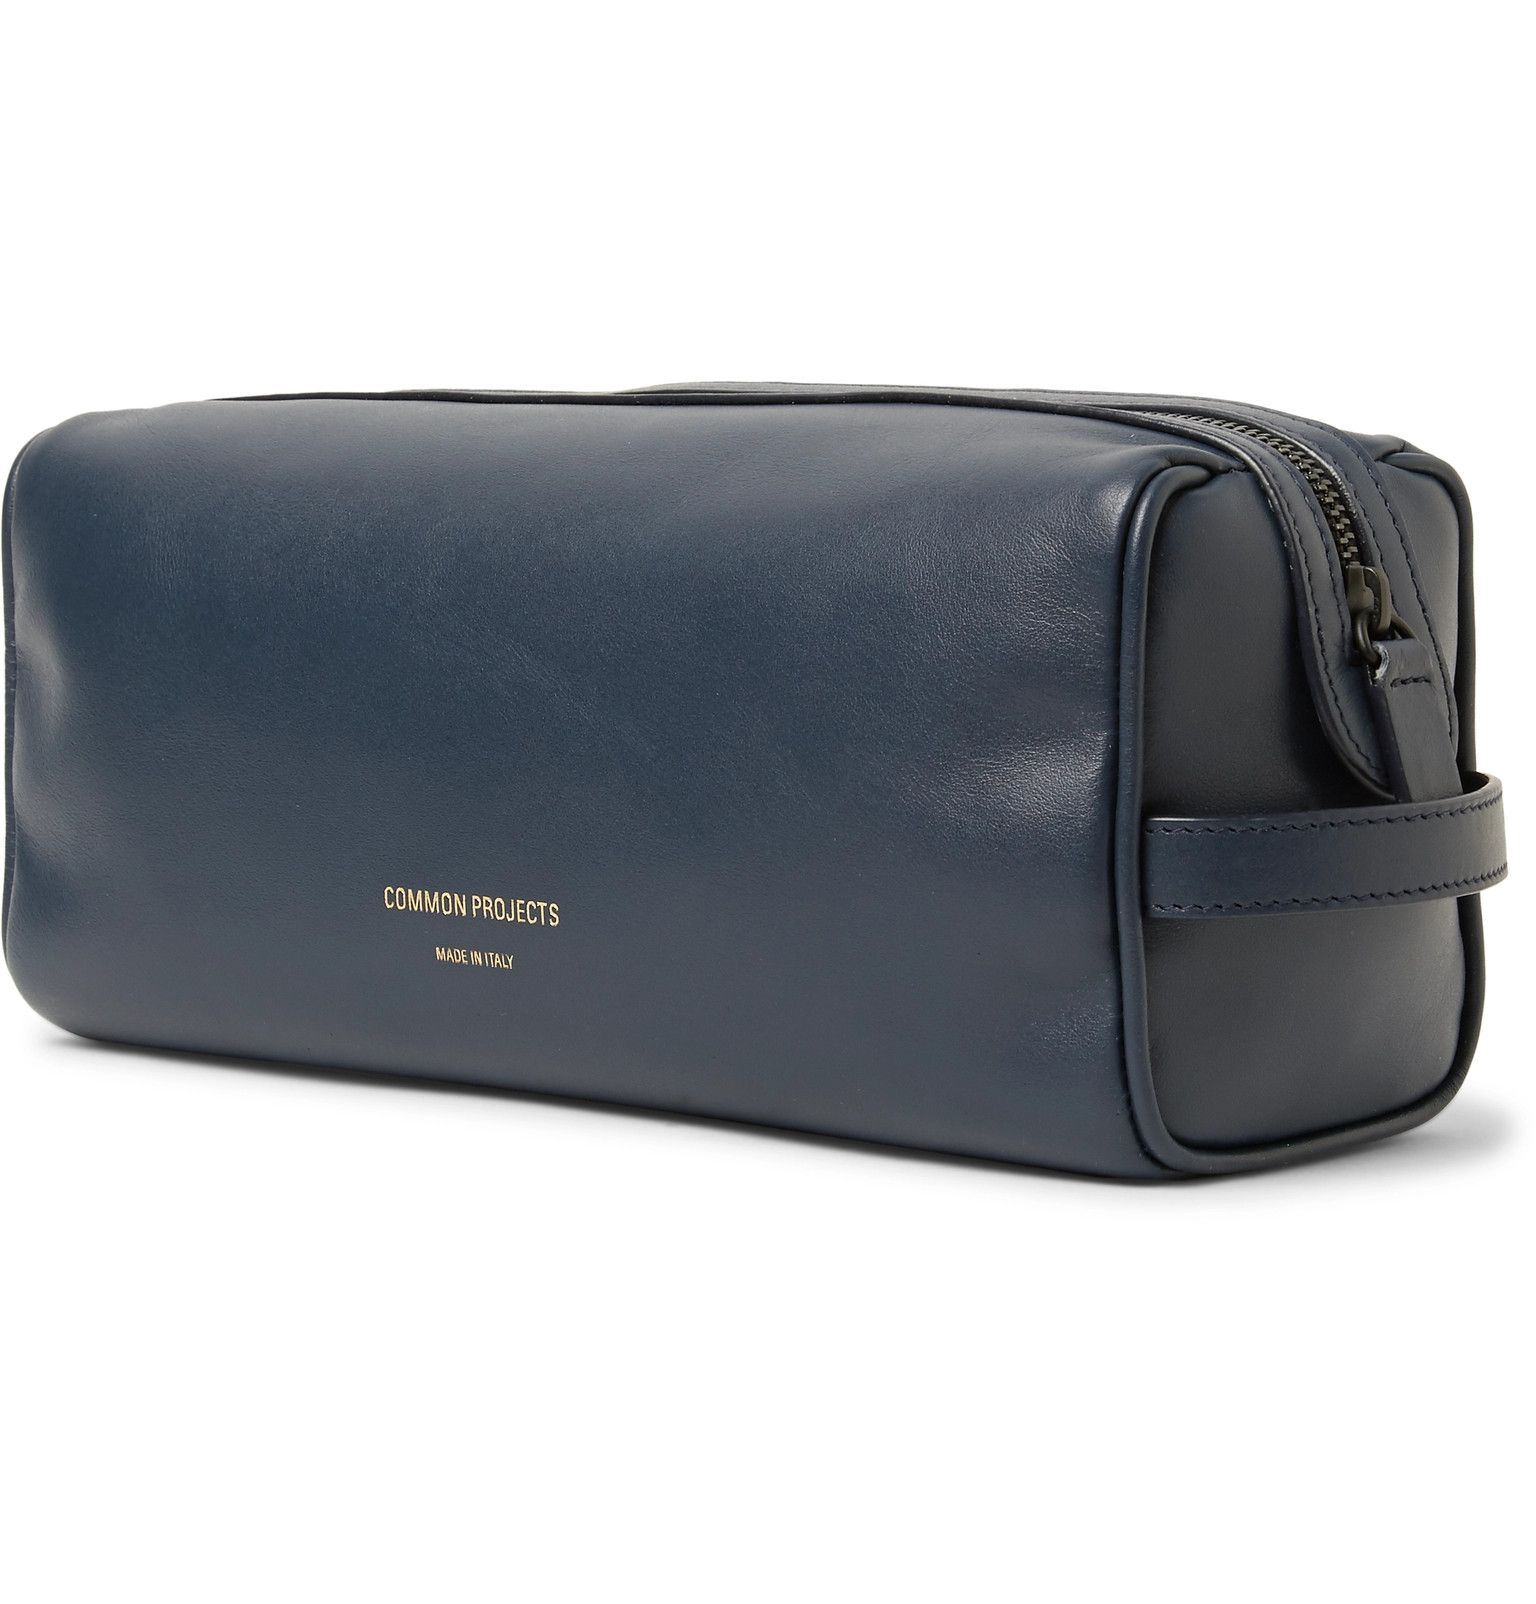 a78e1e70ae0 Common Projects - Leather Wash Bag   bags   Pinterest   Bags, Wash ...